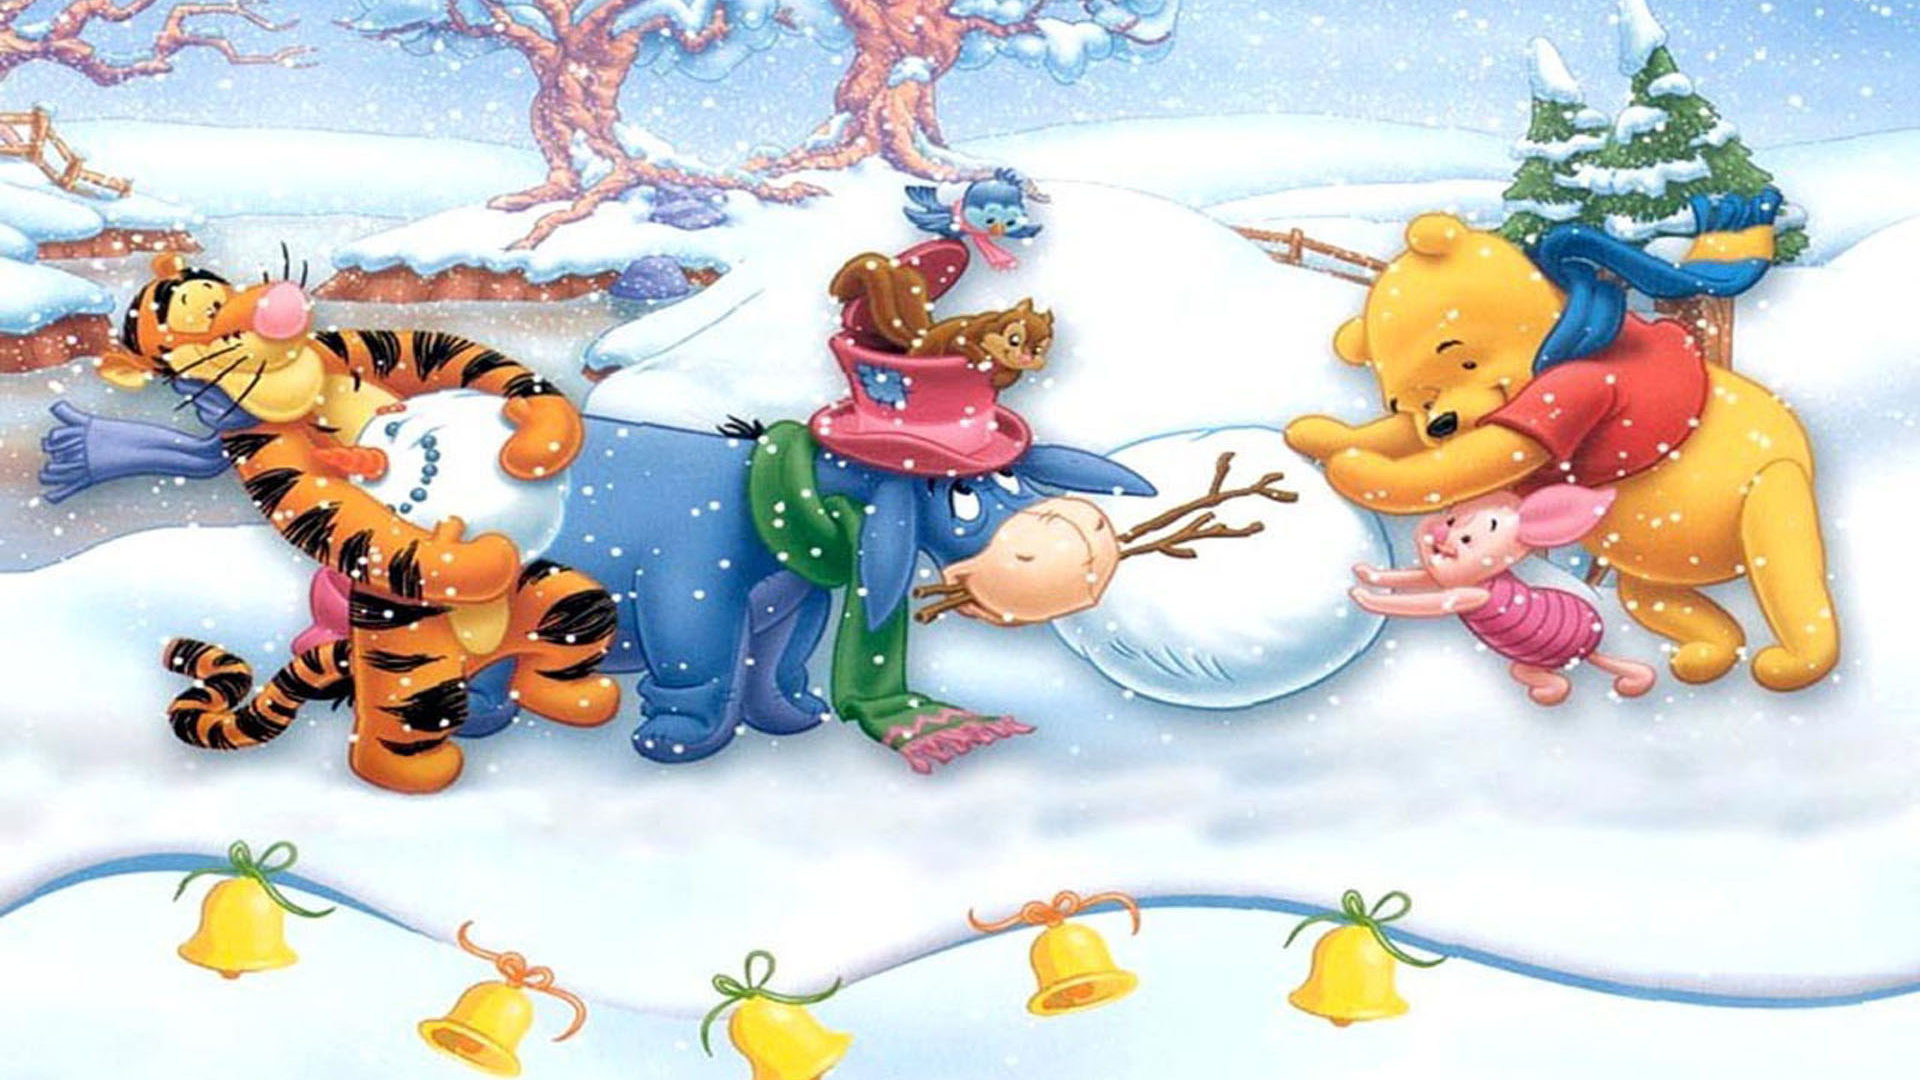 Piglet Wallpaper Iphone Winnie The Pooh Making Snowman Merry Christmas Hd